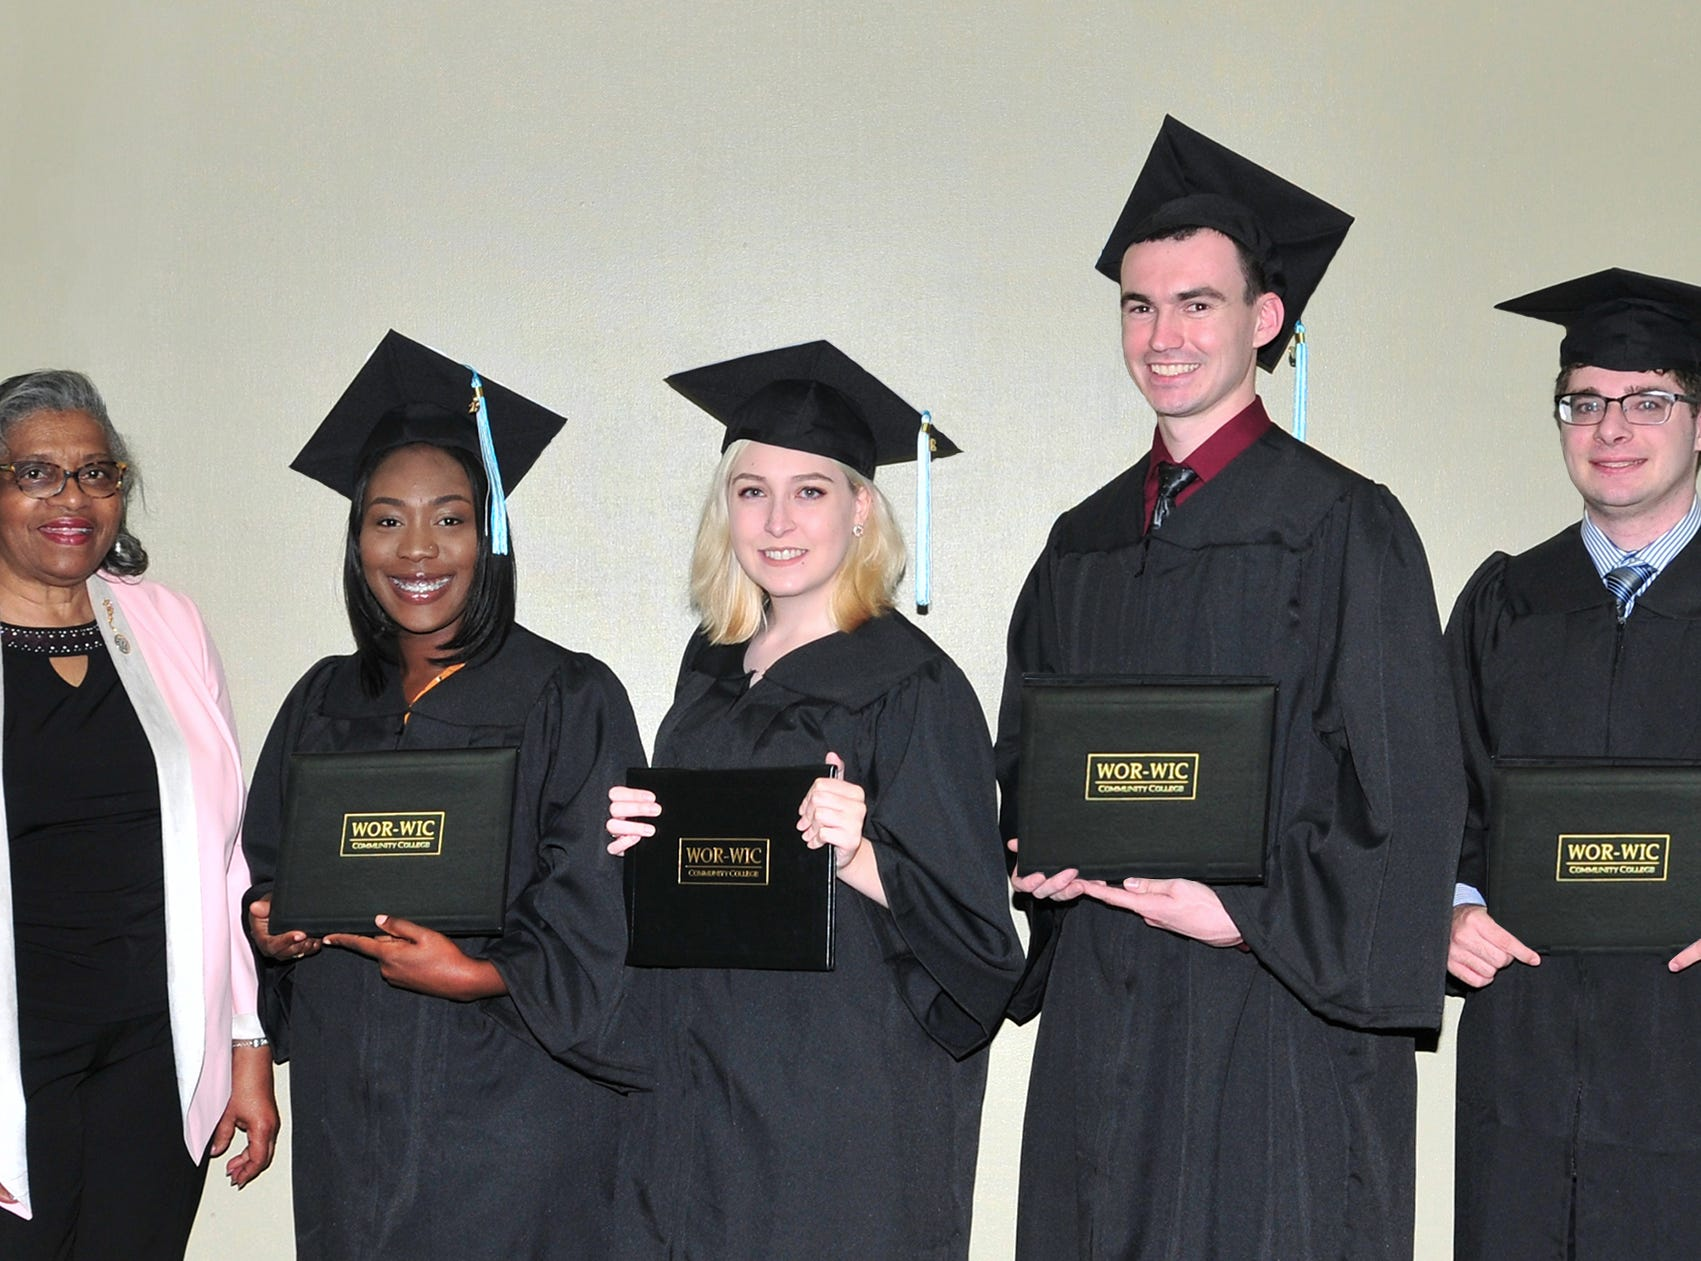 Diana Purnell of Berlin, president of the Worcester County Commissioners, congratulates some of the graduates from northern Worcester County who received their associate degrees at Wor-Wic Community College. From left, next to Purnell, Brianna Bowen, Jacqueline McGuire, Tyler Tull and Mitchell Cooper of Bishopville.